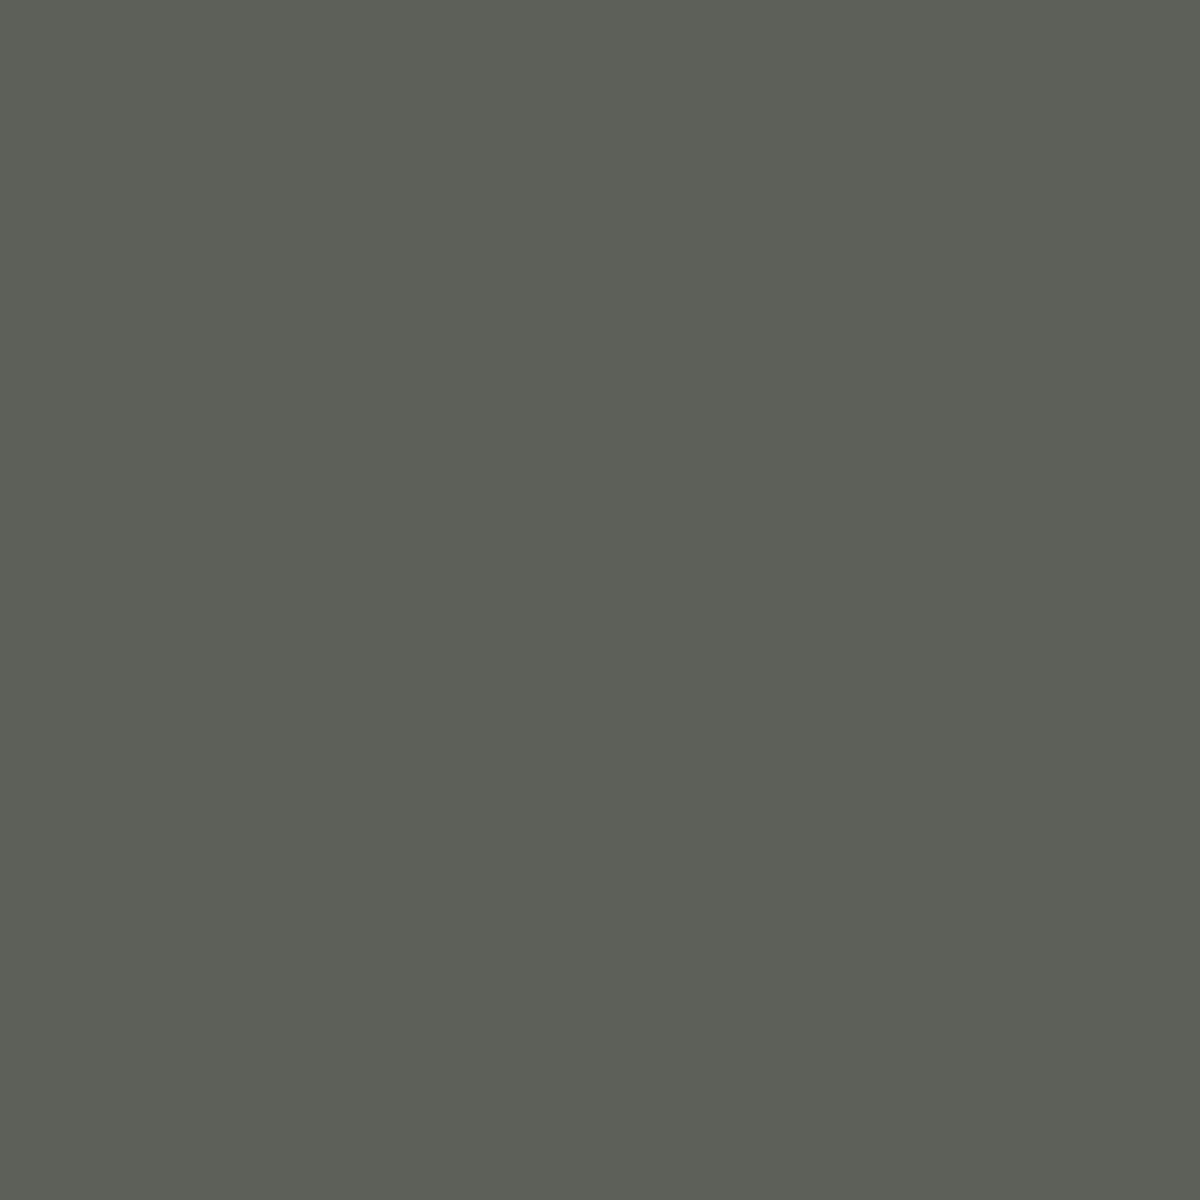 Knotwood Color: Slate Gray